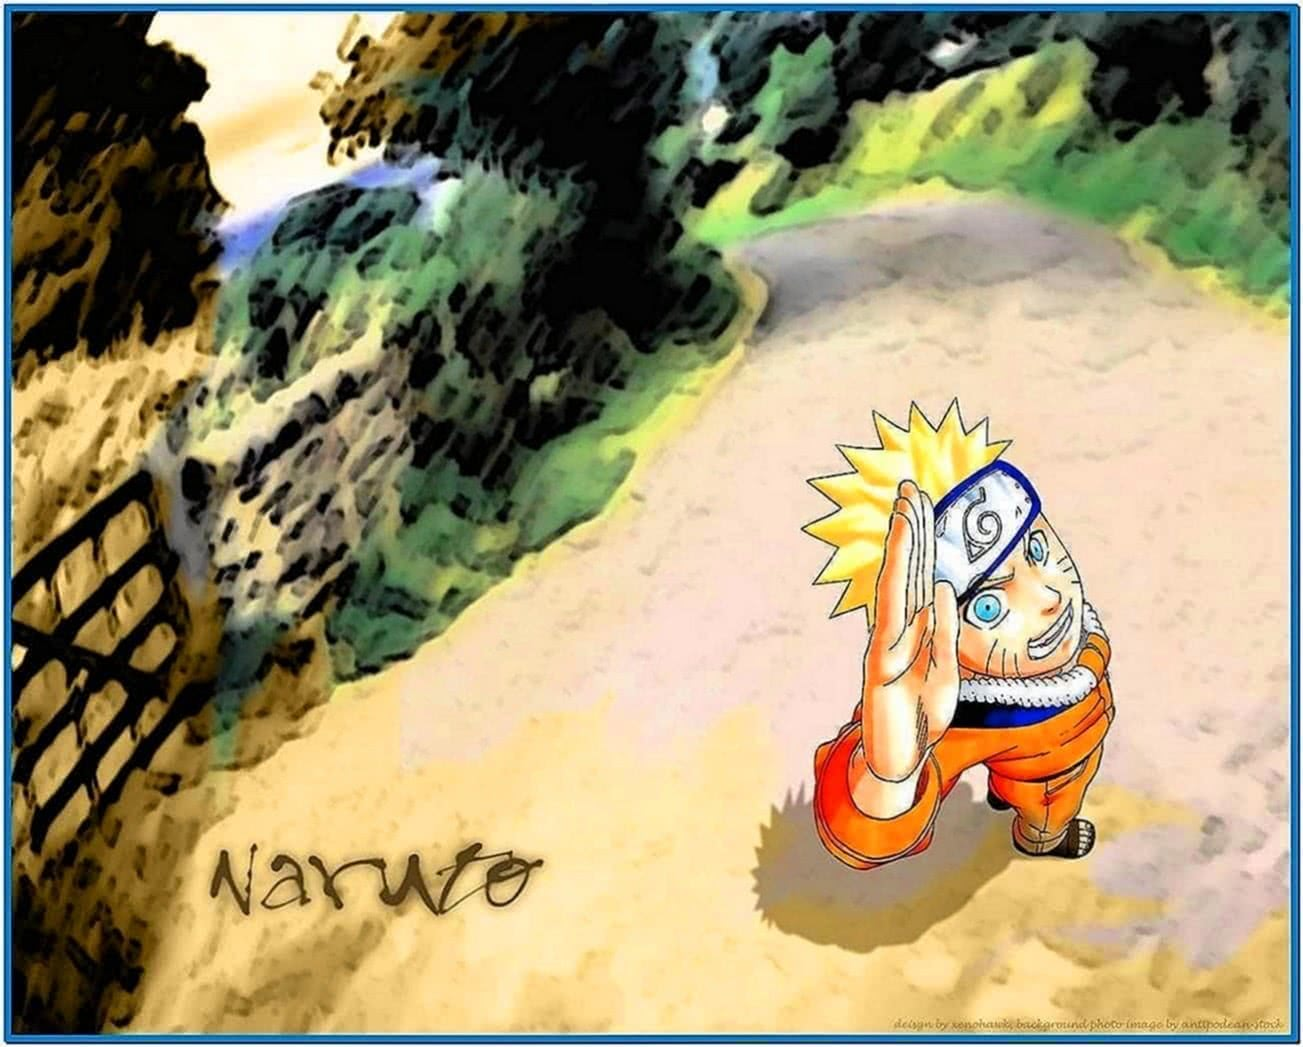 Naruto Screensaver for PC